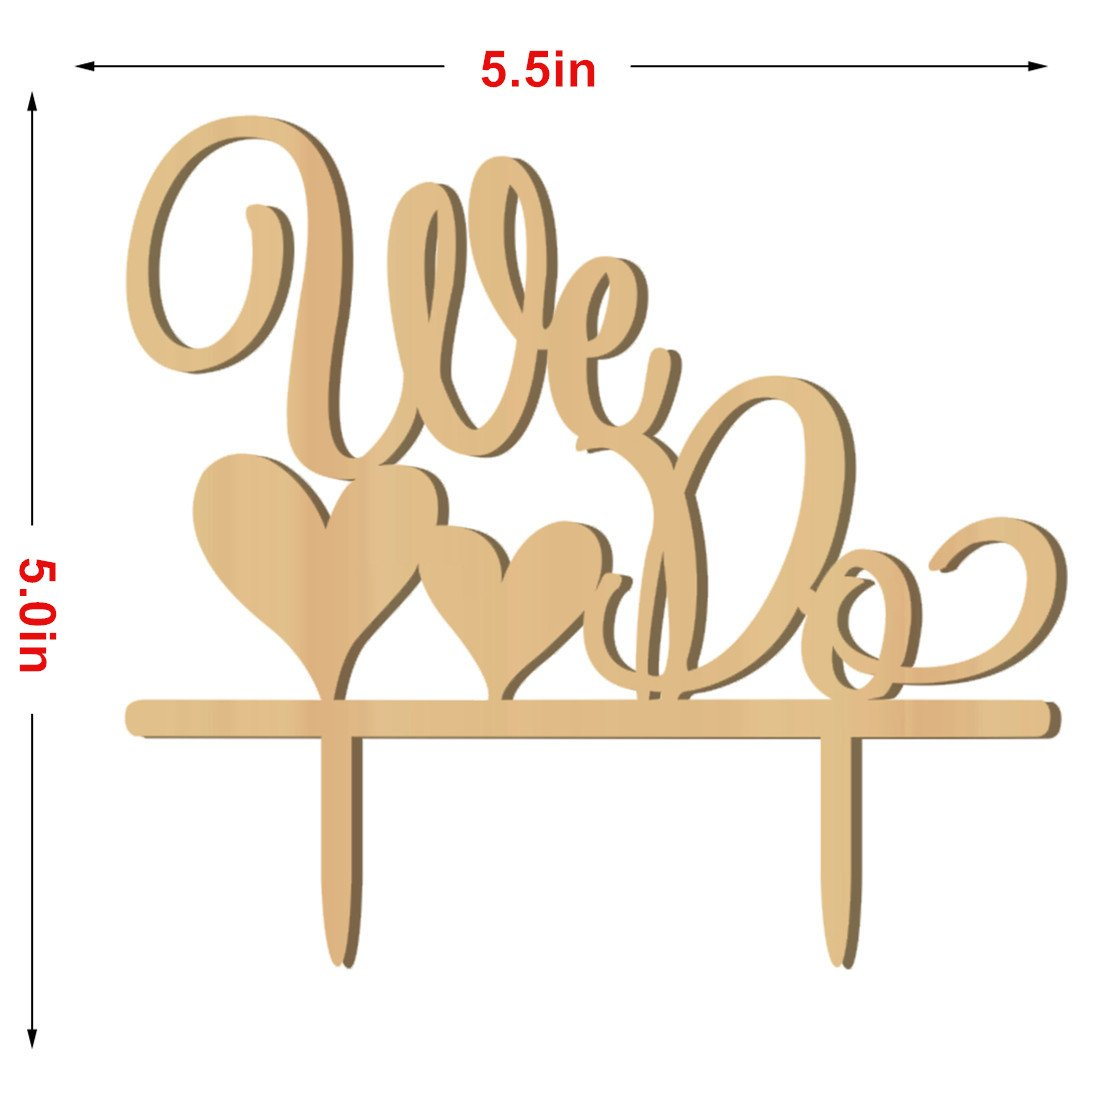 Kalevel 2pcs We Do Wedding Ring Box Cake Cupcake Toppers Rustic Wooden Ring Bearer Box Vintage Personalized Funny Wedding Cake Toppers Decorations Cake Insert Card Ring Holder for Wedding Ceremony by Kalevel (Image #5)